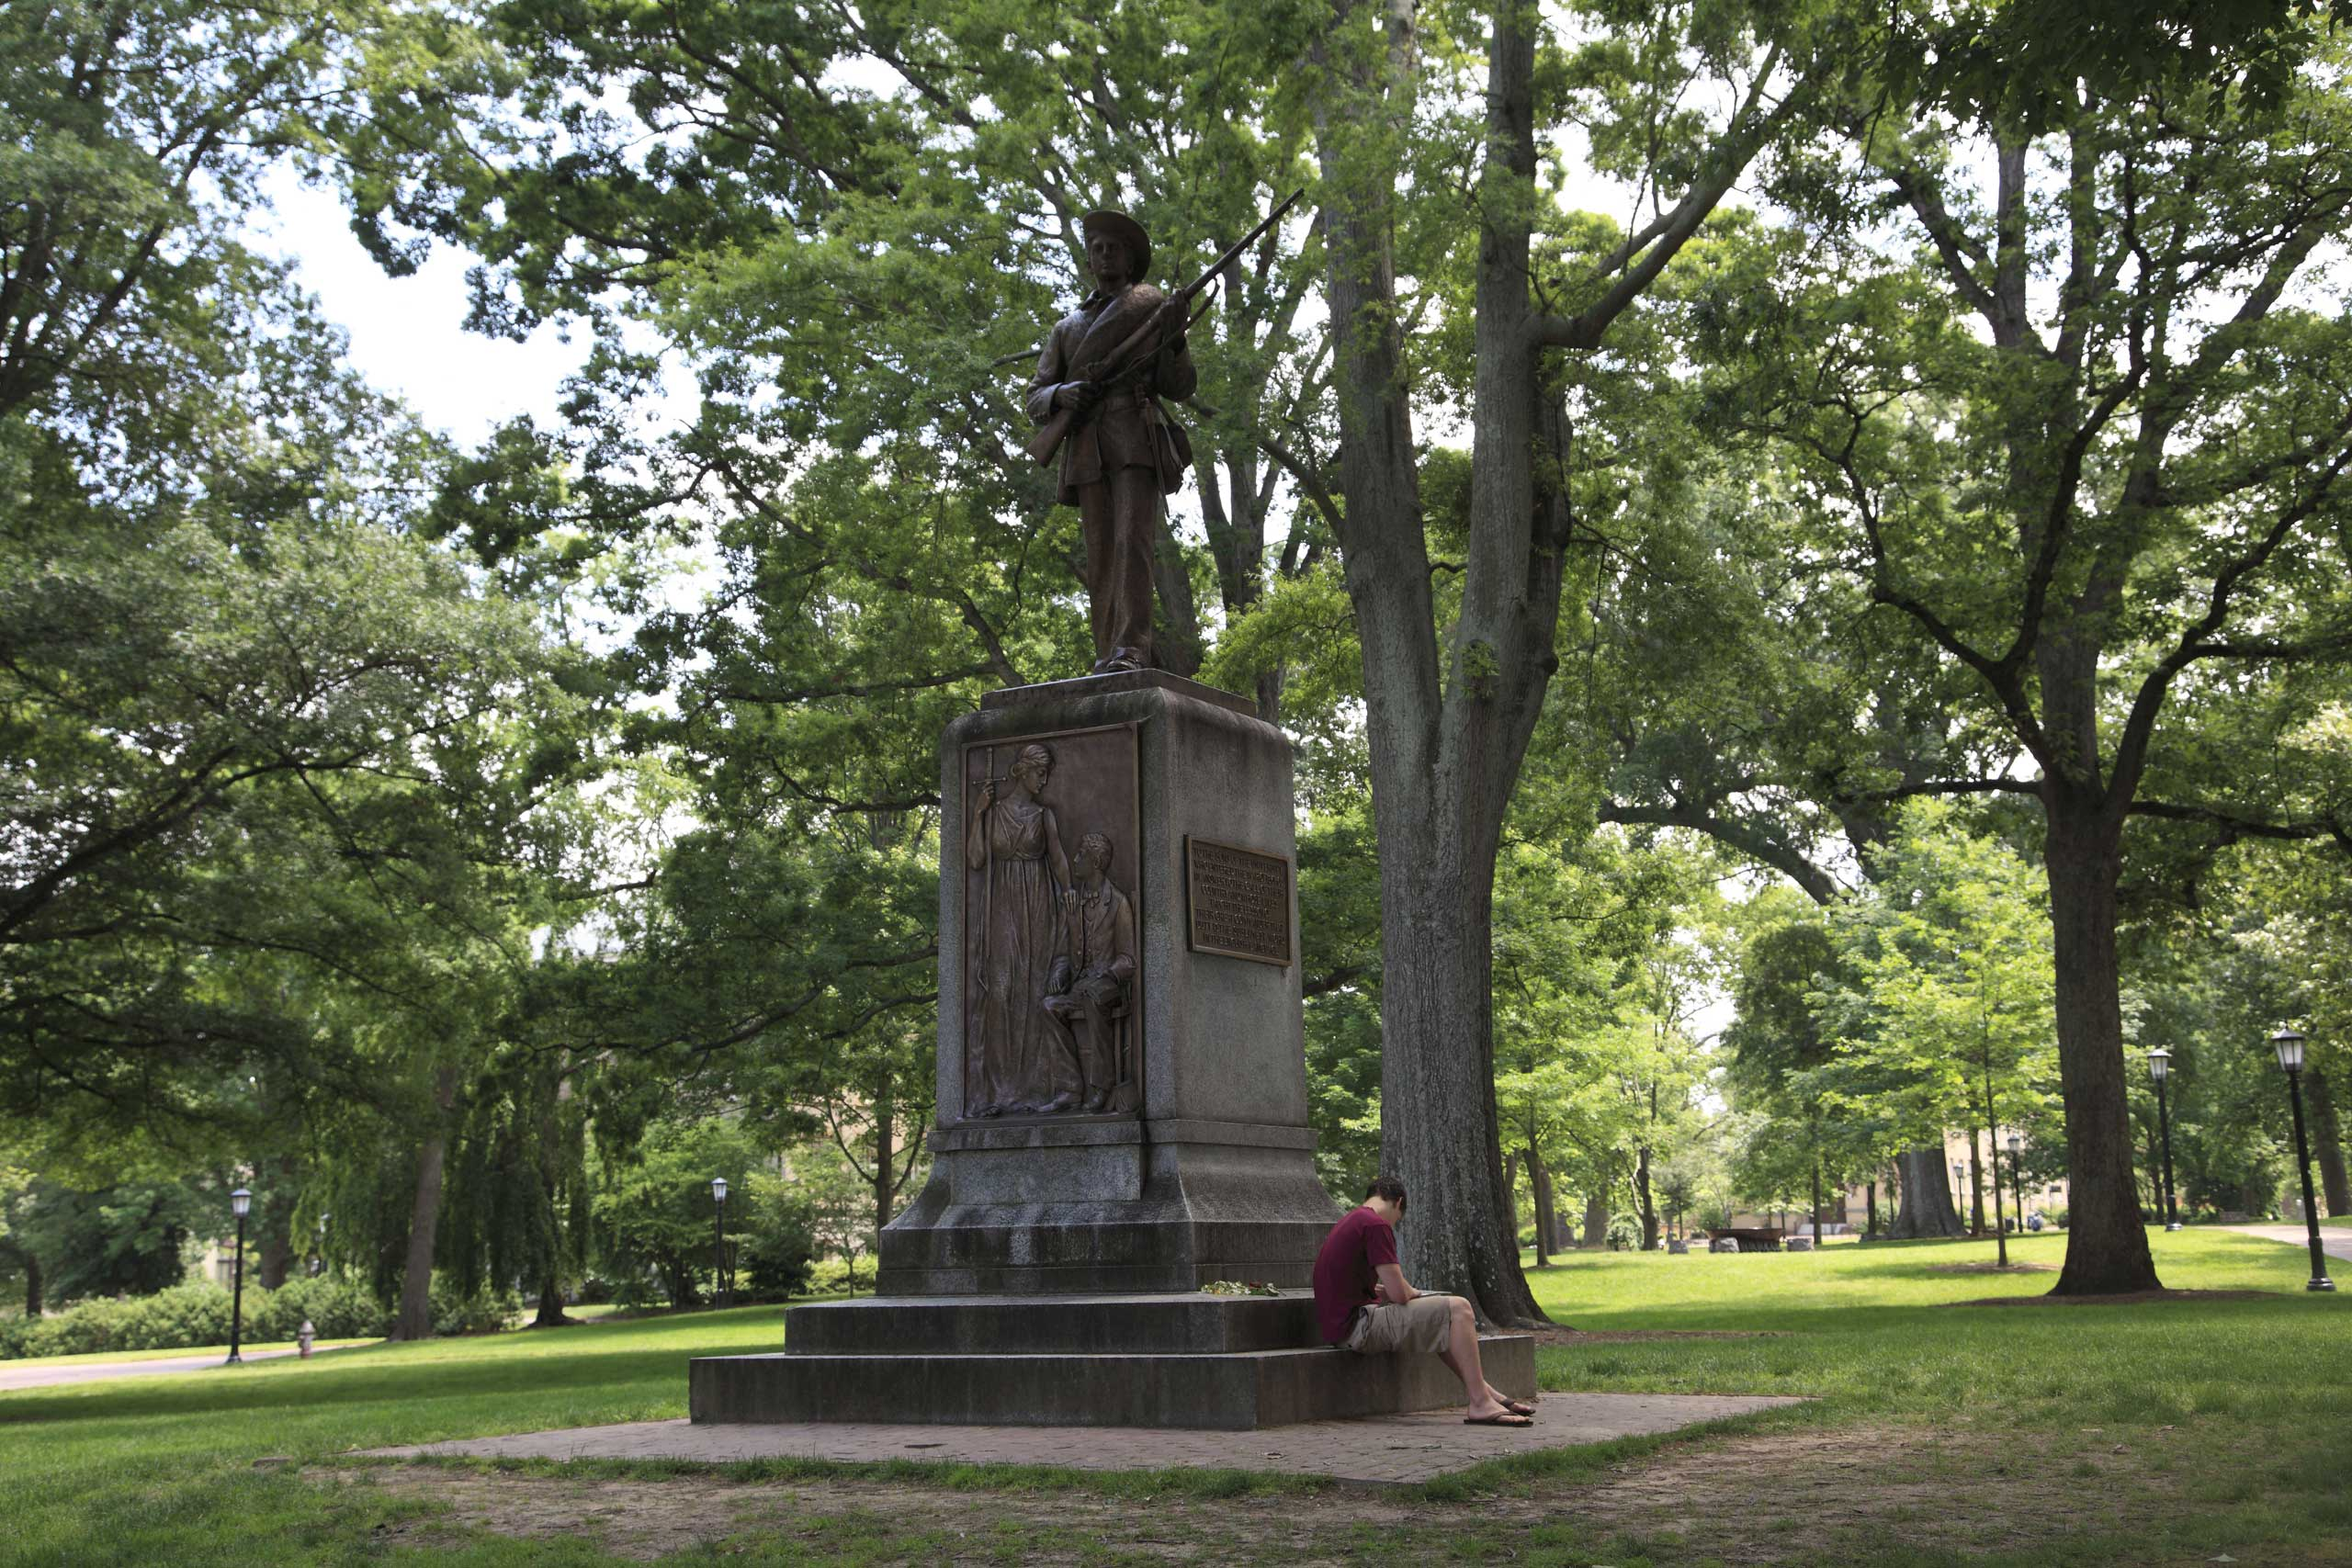 Silent Sam, monument to the 321 alumni of UNC who died in the Civil War, University of North Carolina, Chapel Hill.